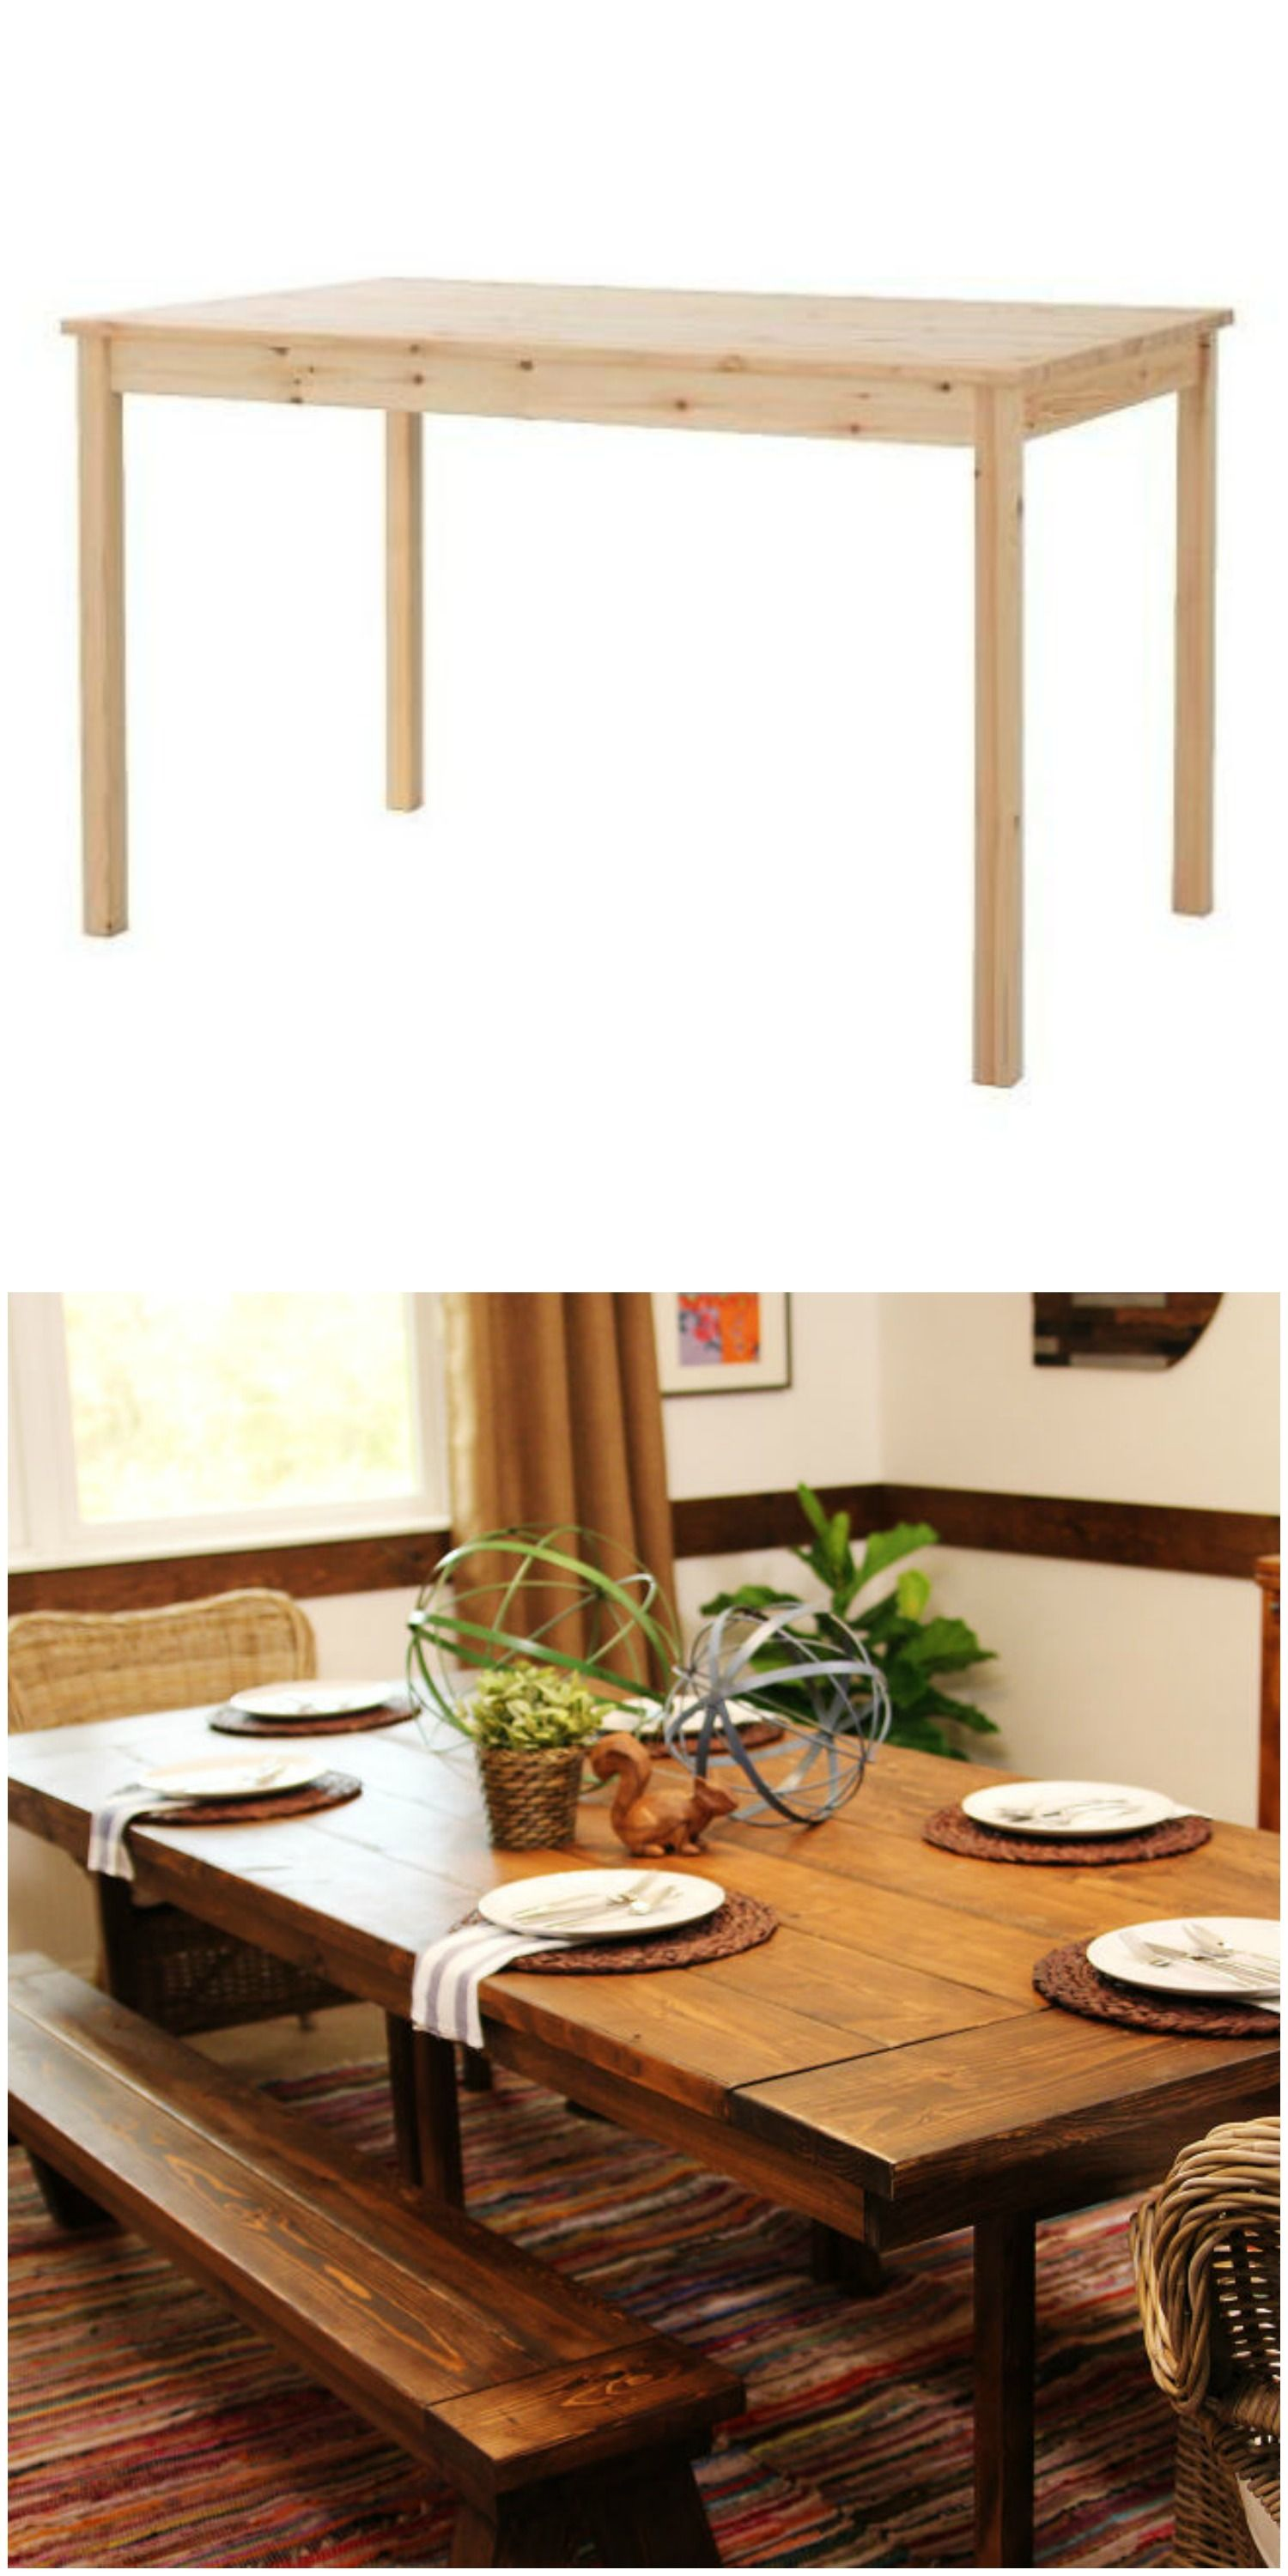 These 35 Ikea Product Hacks Are So Brilliant You Ll Wish You Thought Of Them Ikea Dining Table Ikea Dining Ikea